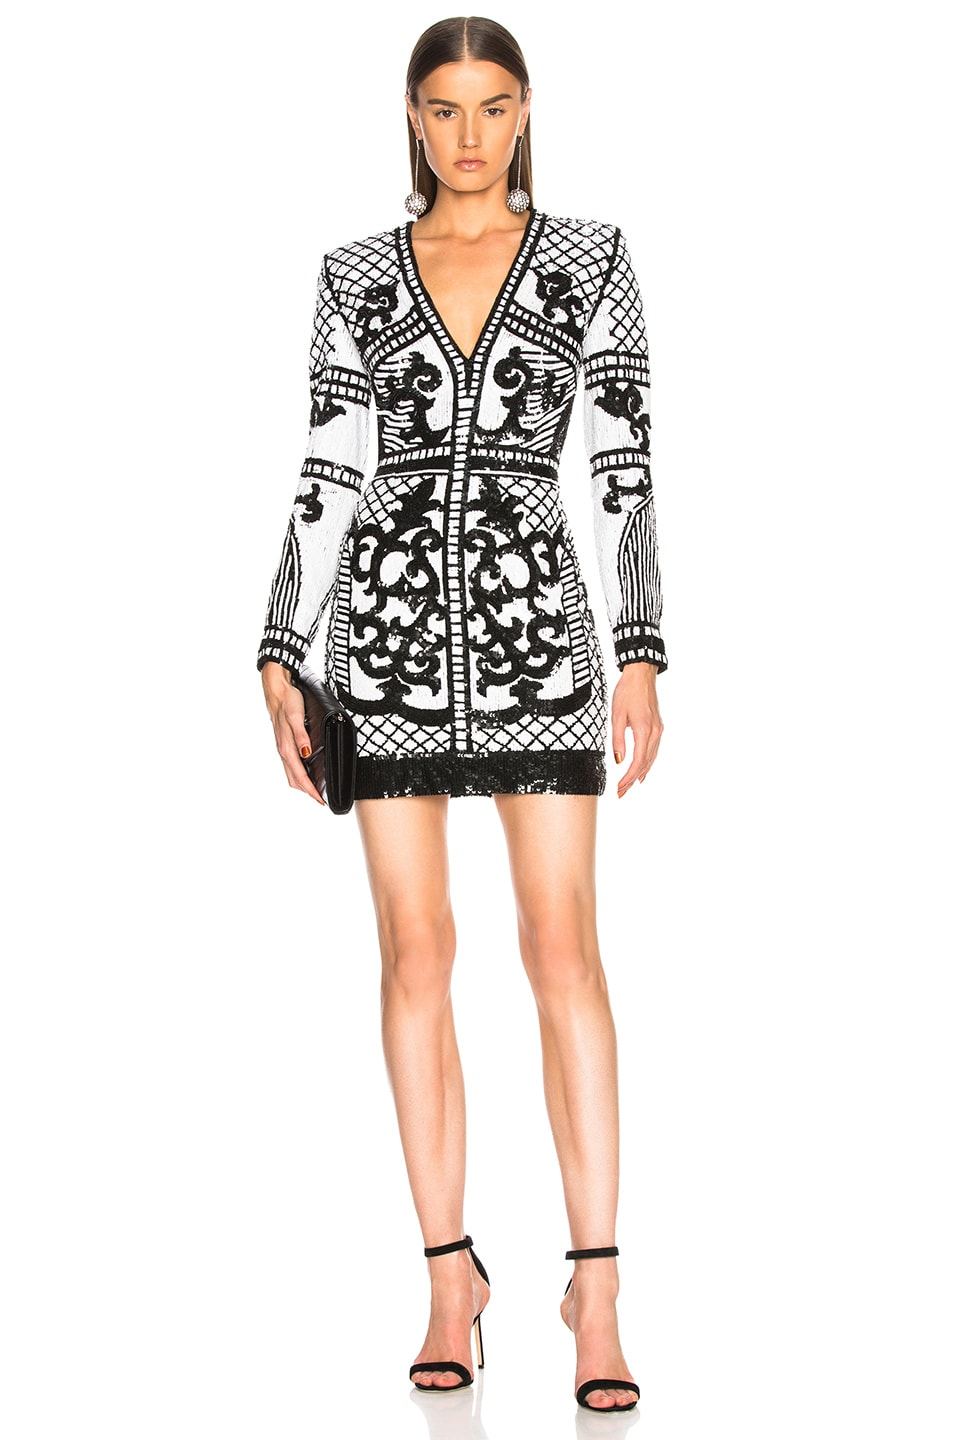 d1db68c6 Image 1 of BALMAIN Sequin Mini Dress in Black & White